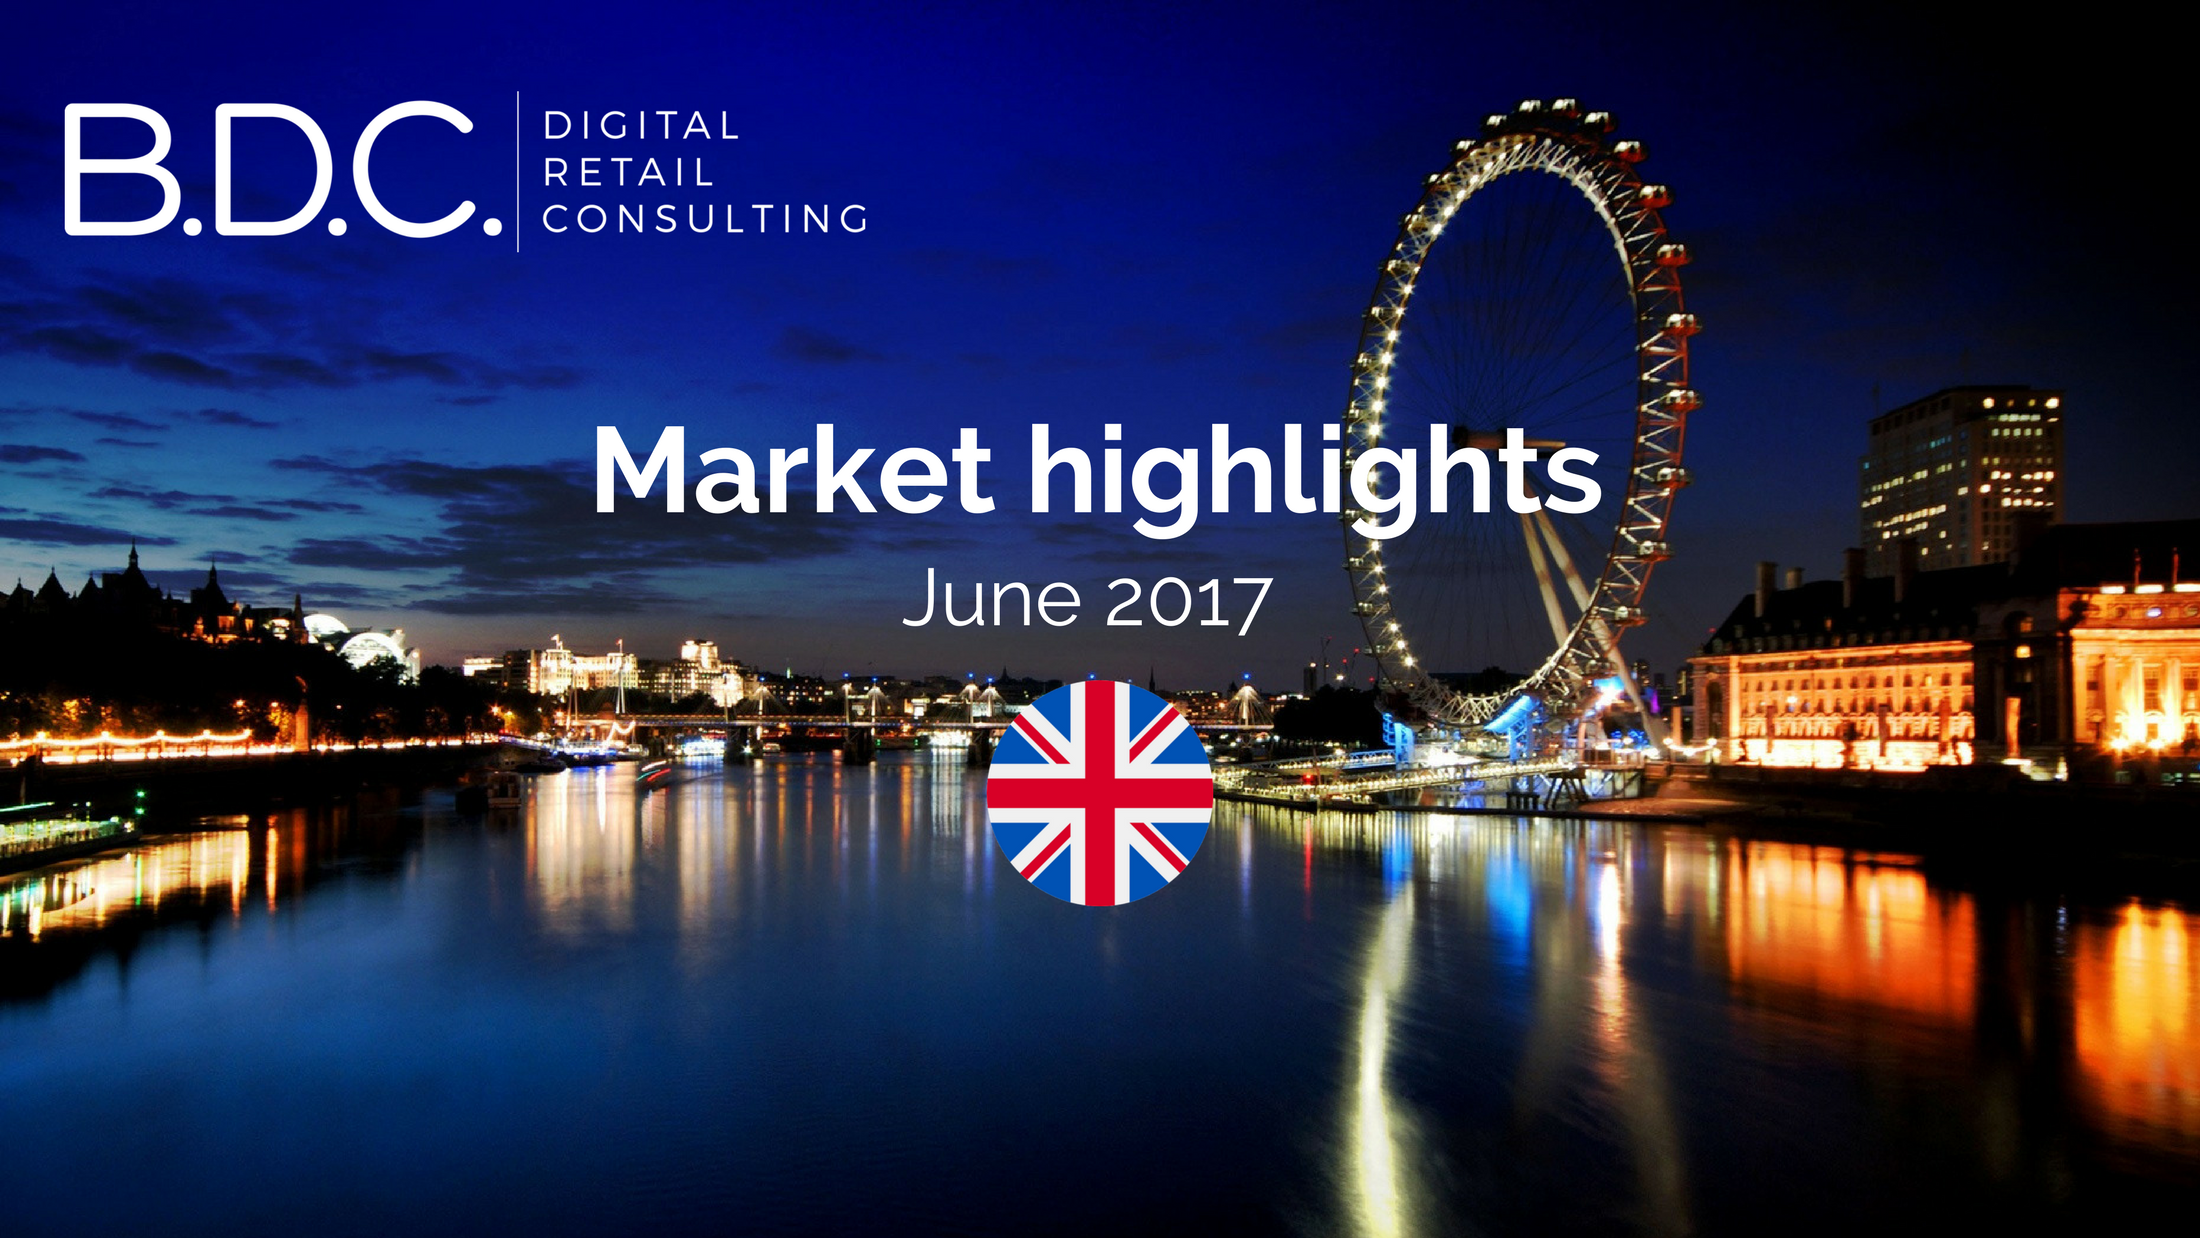 Trends News 3 1 - Market highlights - June 2017